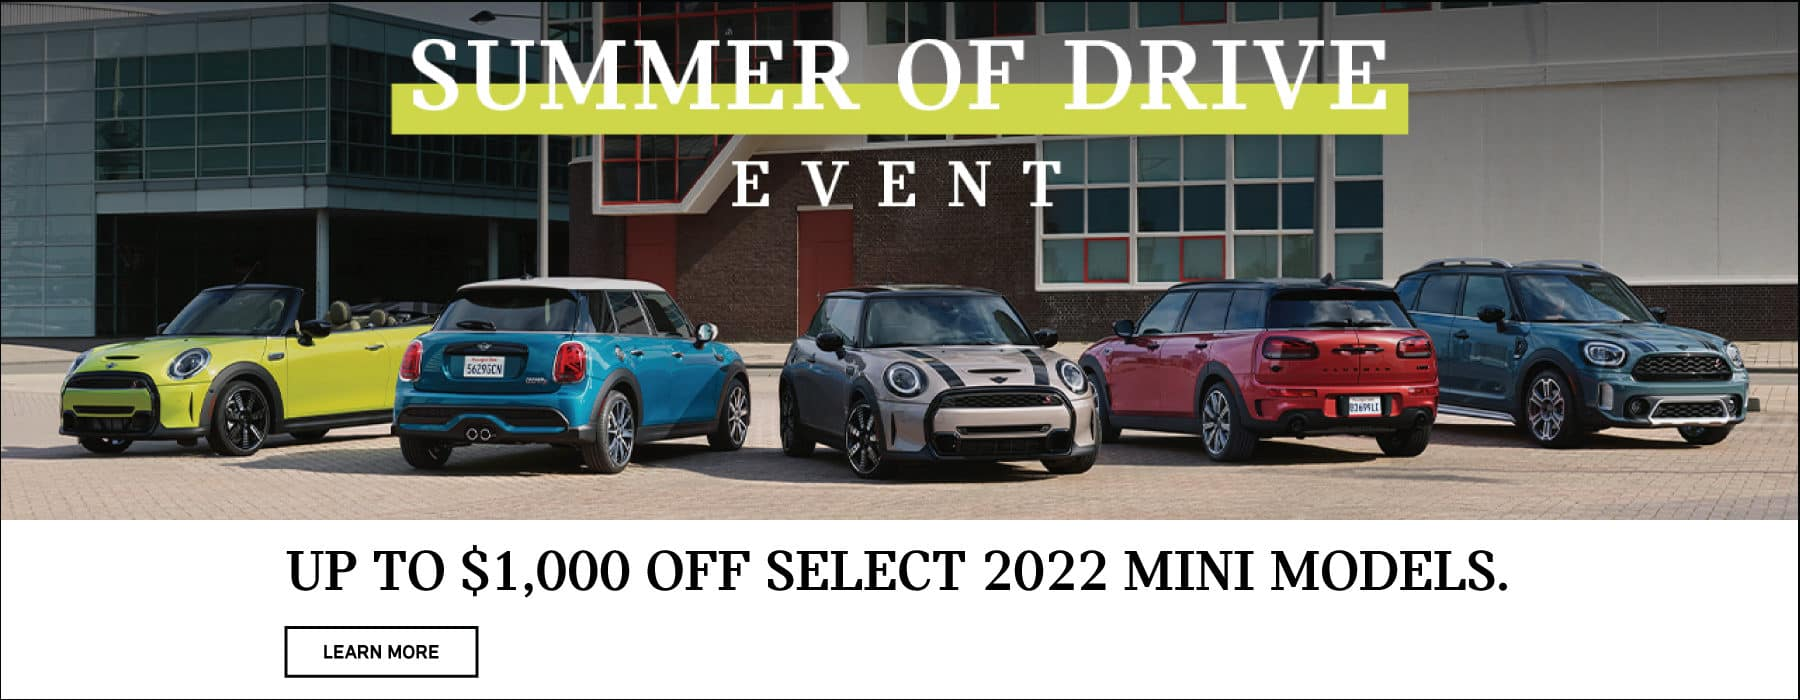 Up to $1,000 off select 2022 MINI models. Valid through 06/30/21. Click to learn more. See dealer for full details. Image shows a family of 2022 MINI vehicles parked outside in front of an industrial building. MINIs Summer of Drive logo is placed over the image.